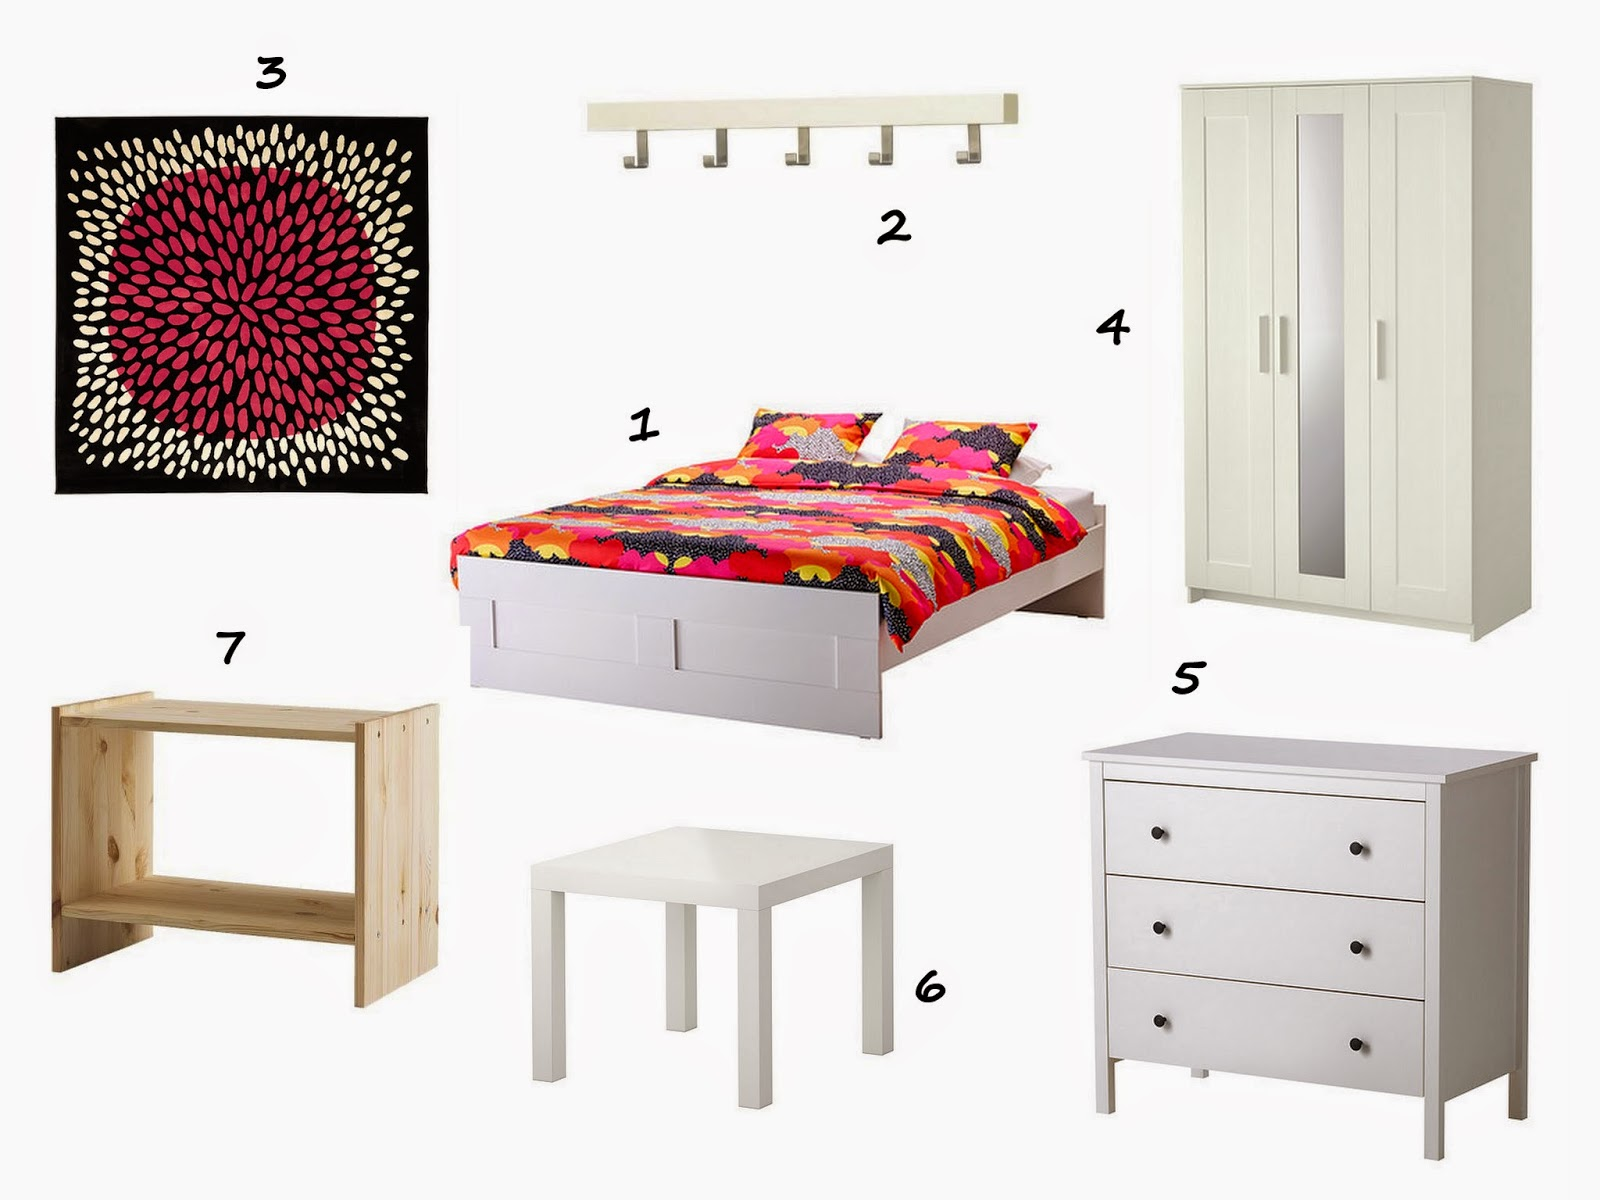 Finest ikea wishlist home inspiration with nachtkast ikea for Nachtkast lampje